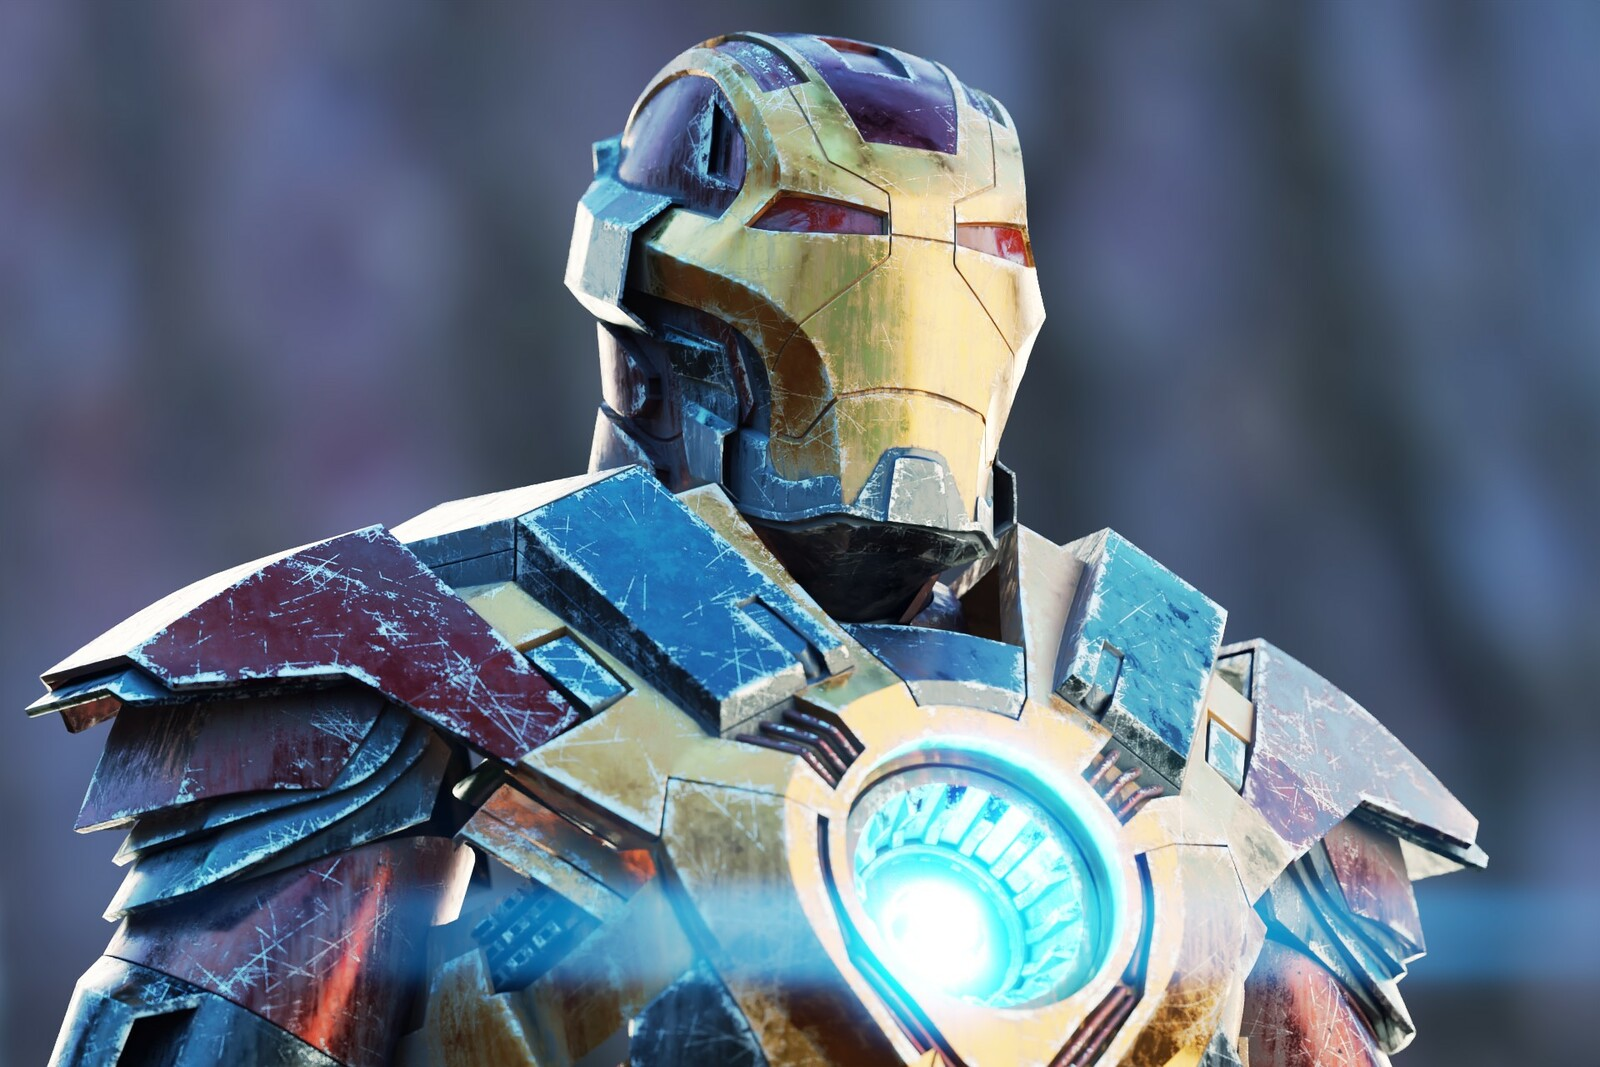 Damaged Iron Man suit